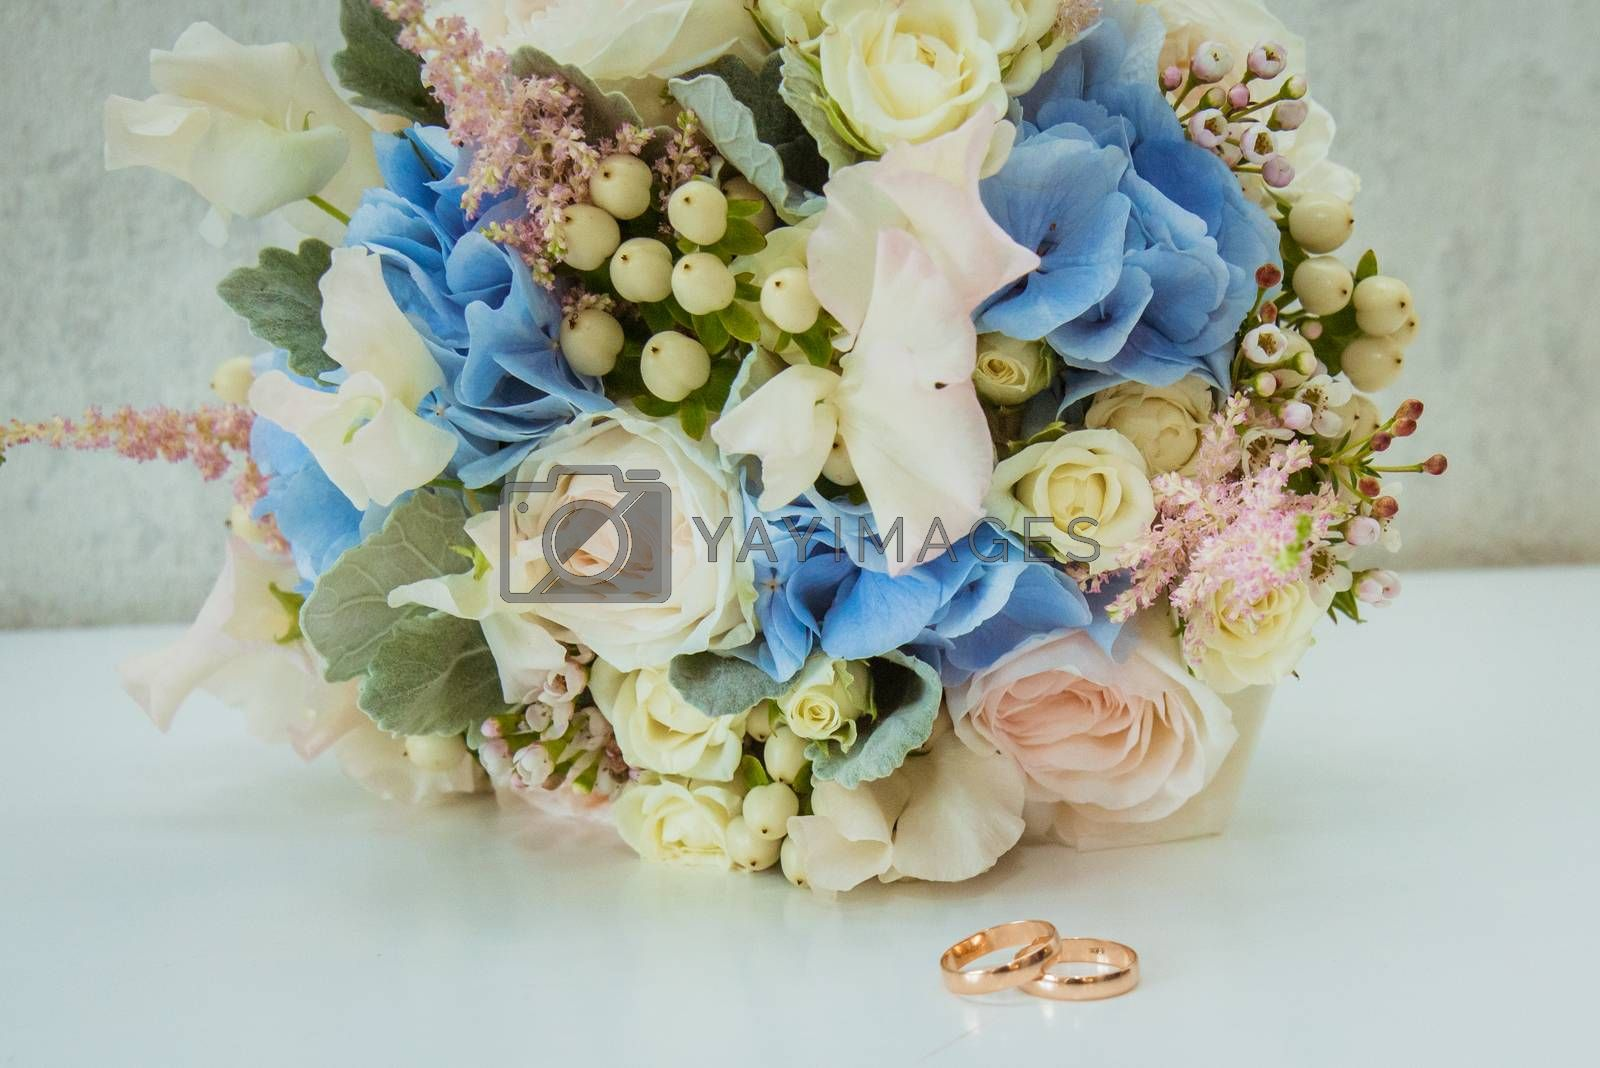 Two Beautiful gold rings of the bride and Groom lie near a bouquet of flowers.